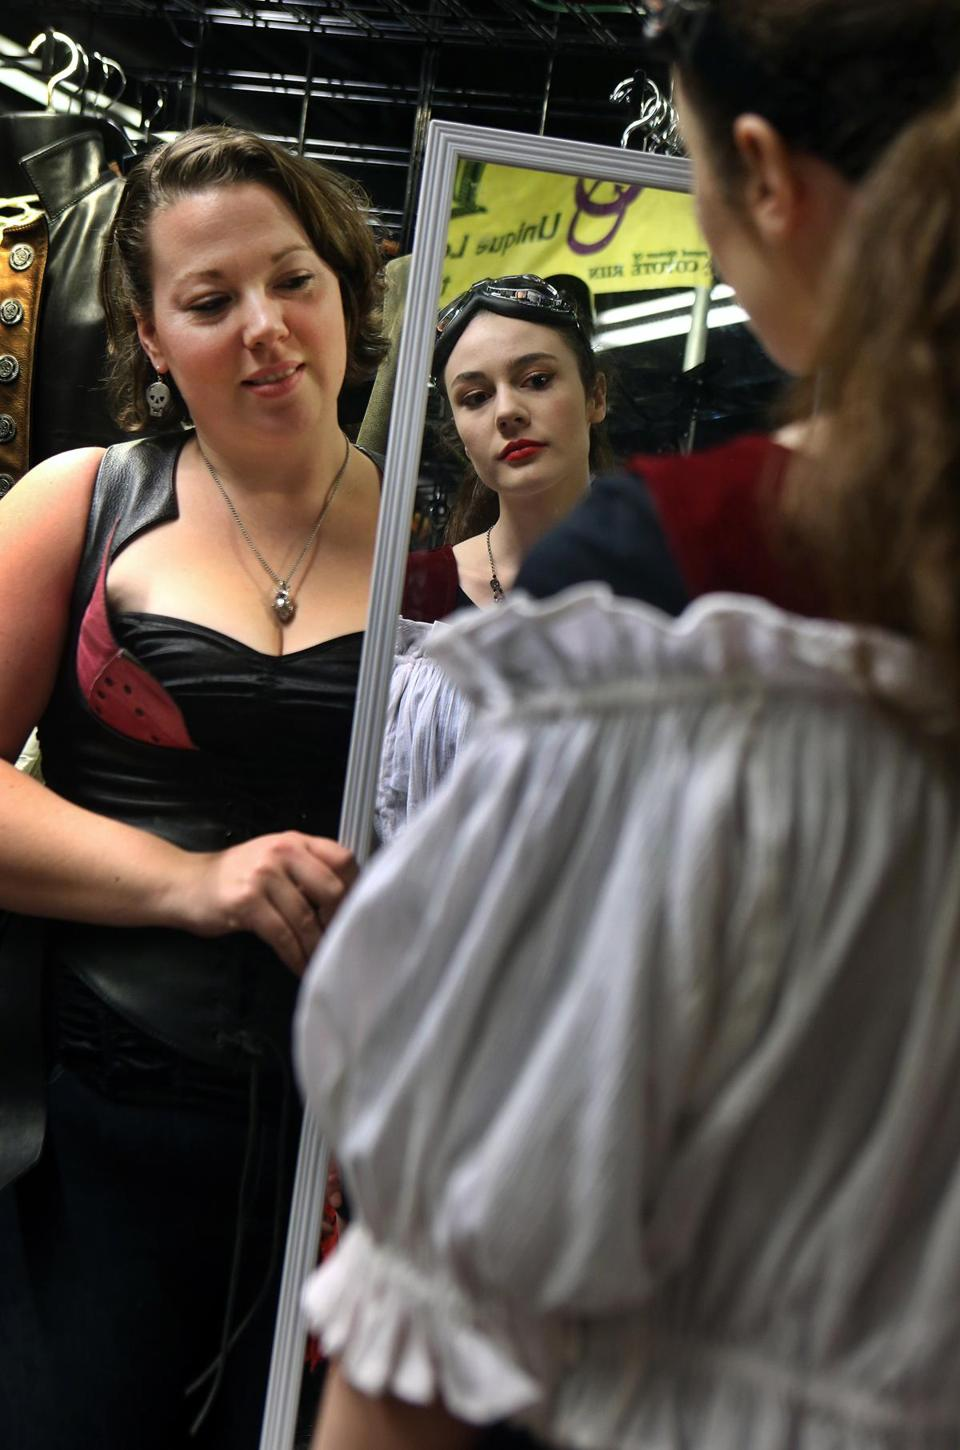 Boston, MA 1/18/15 Maia Schofield, 17, Hampstead, NH, right, comes to the Arisia science-fiction and fantasy convention for the costume-oriented activities. Here she tries on a blouse to go with a corset she bought the day before at the convention while Debbie Sarmir, who works for a vendor, holds the mirror.